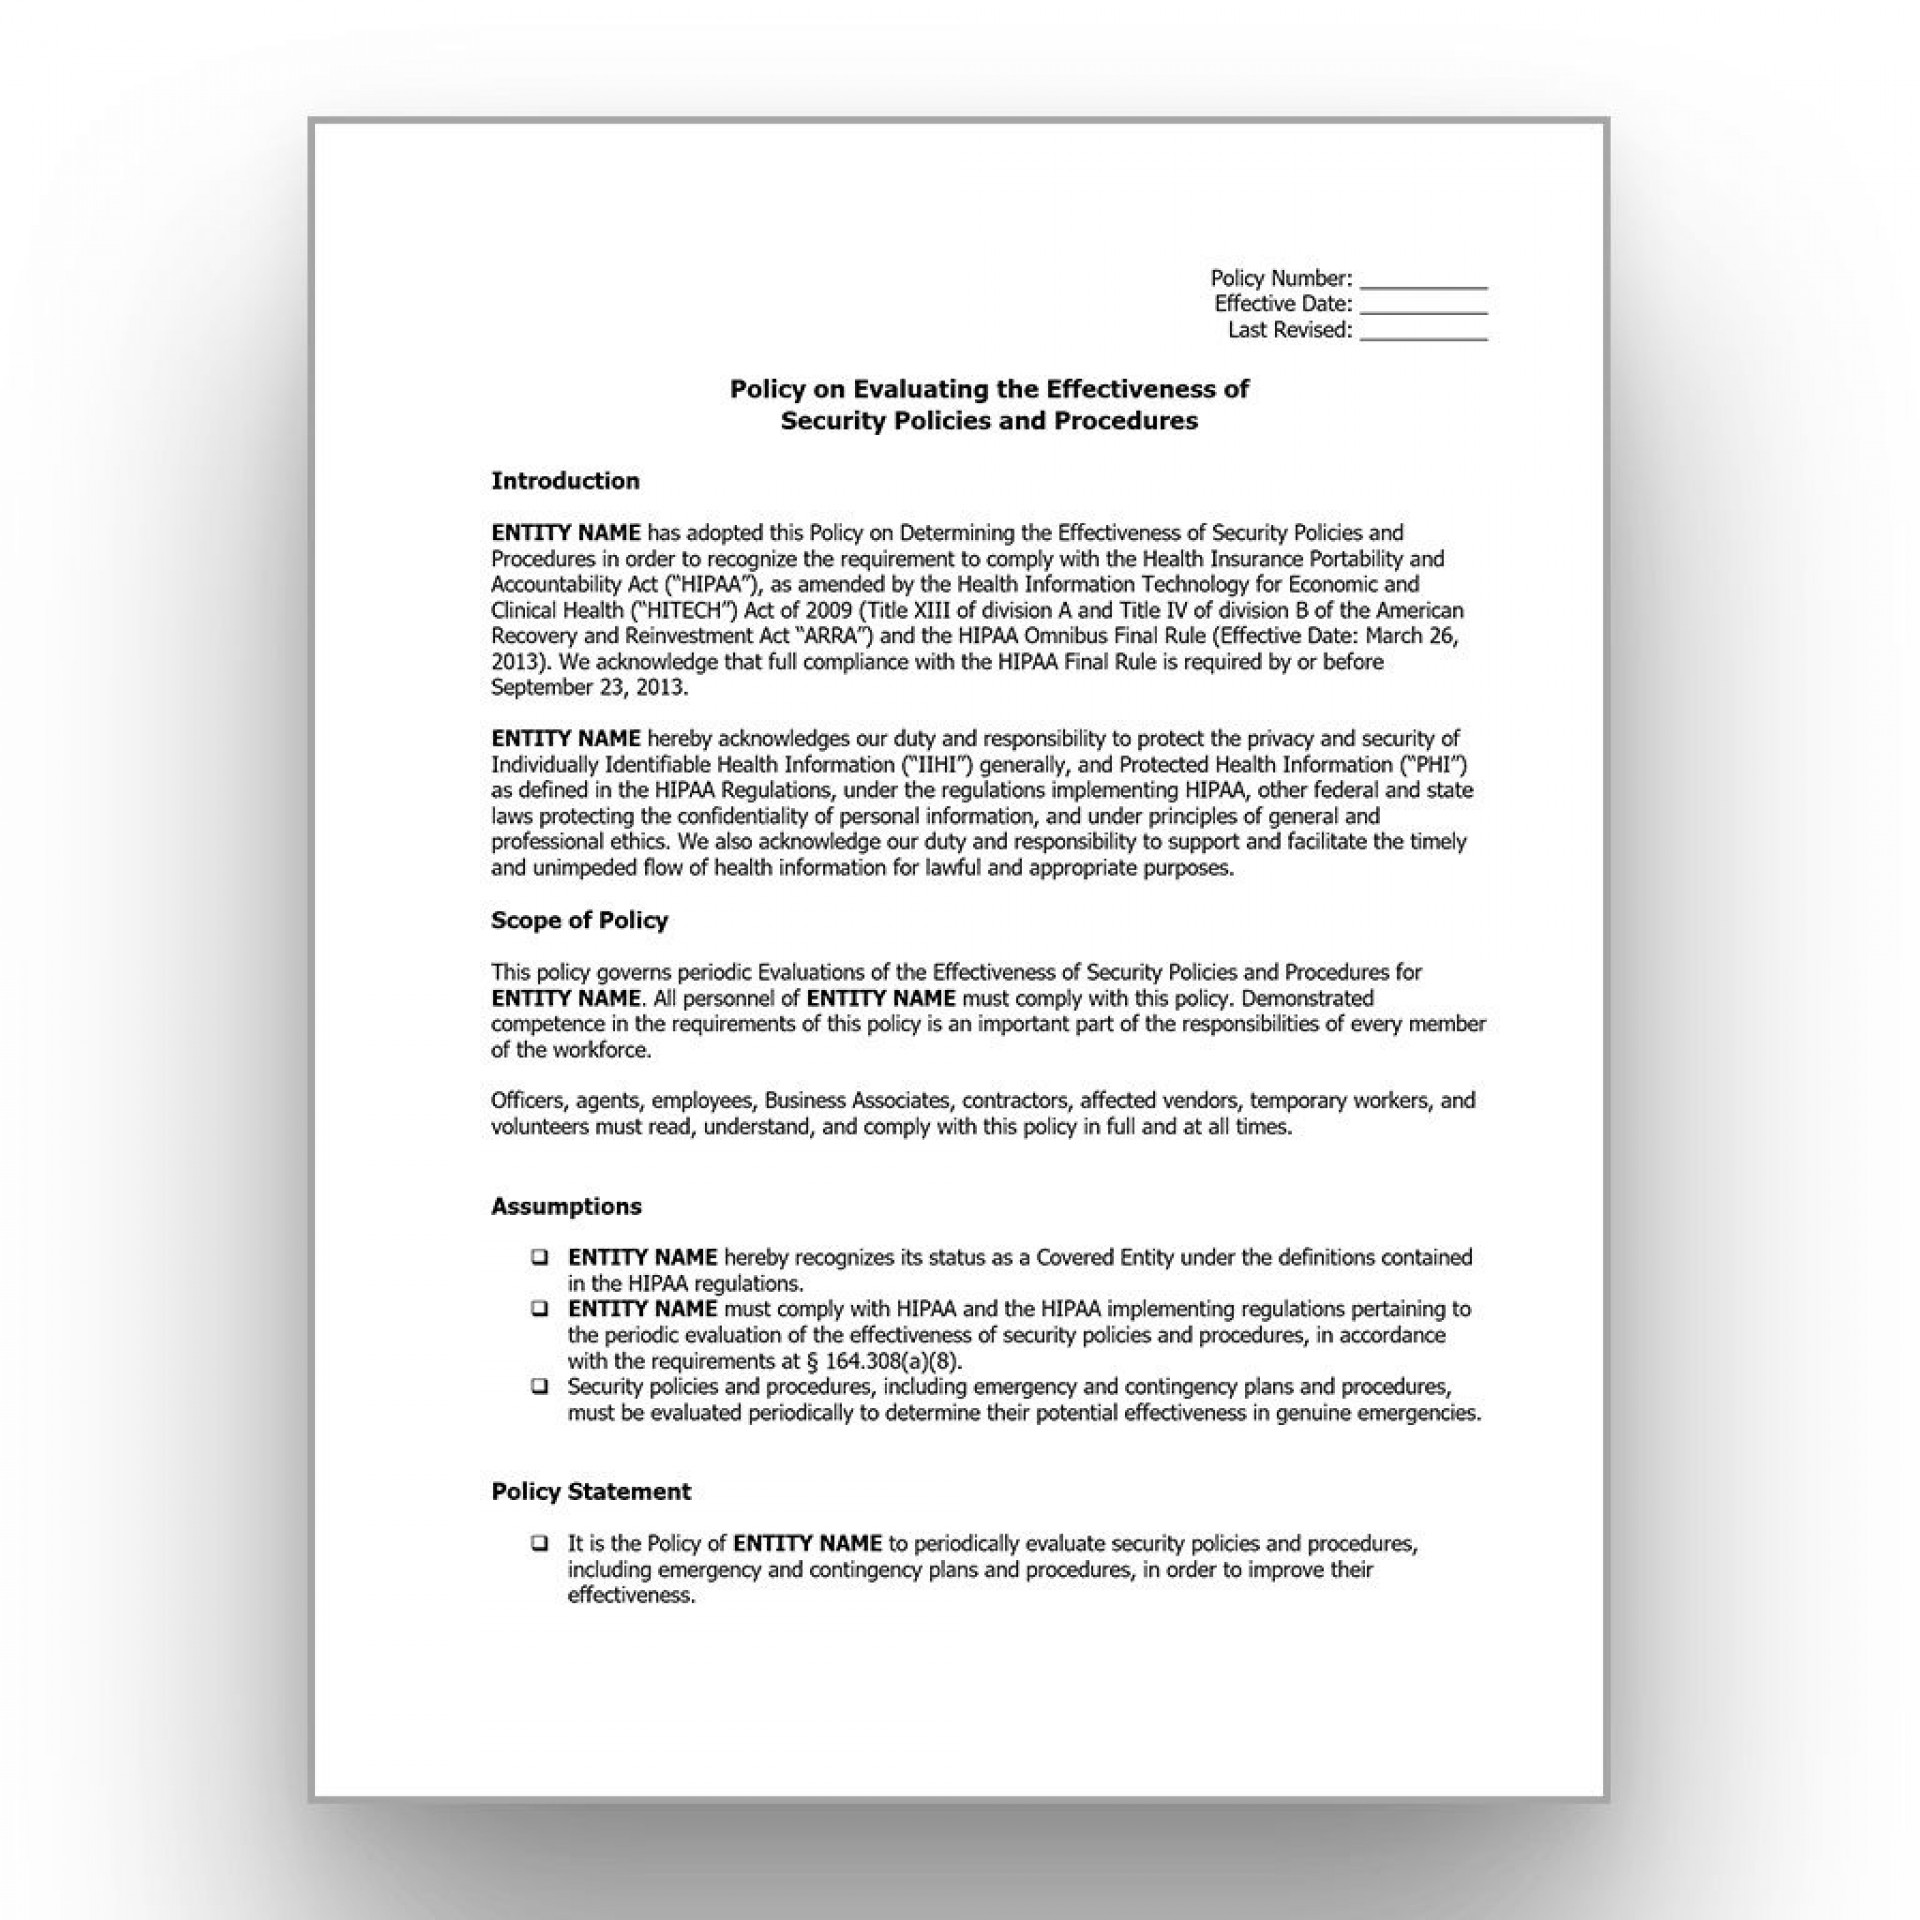 001 Stupendou It Security Policy Template Design  Cyber Nist Australia Uk Free1920